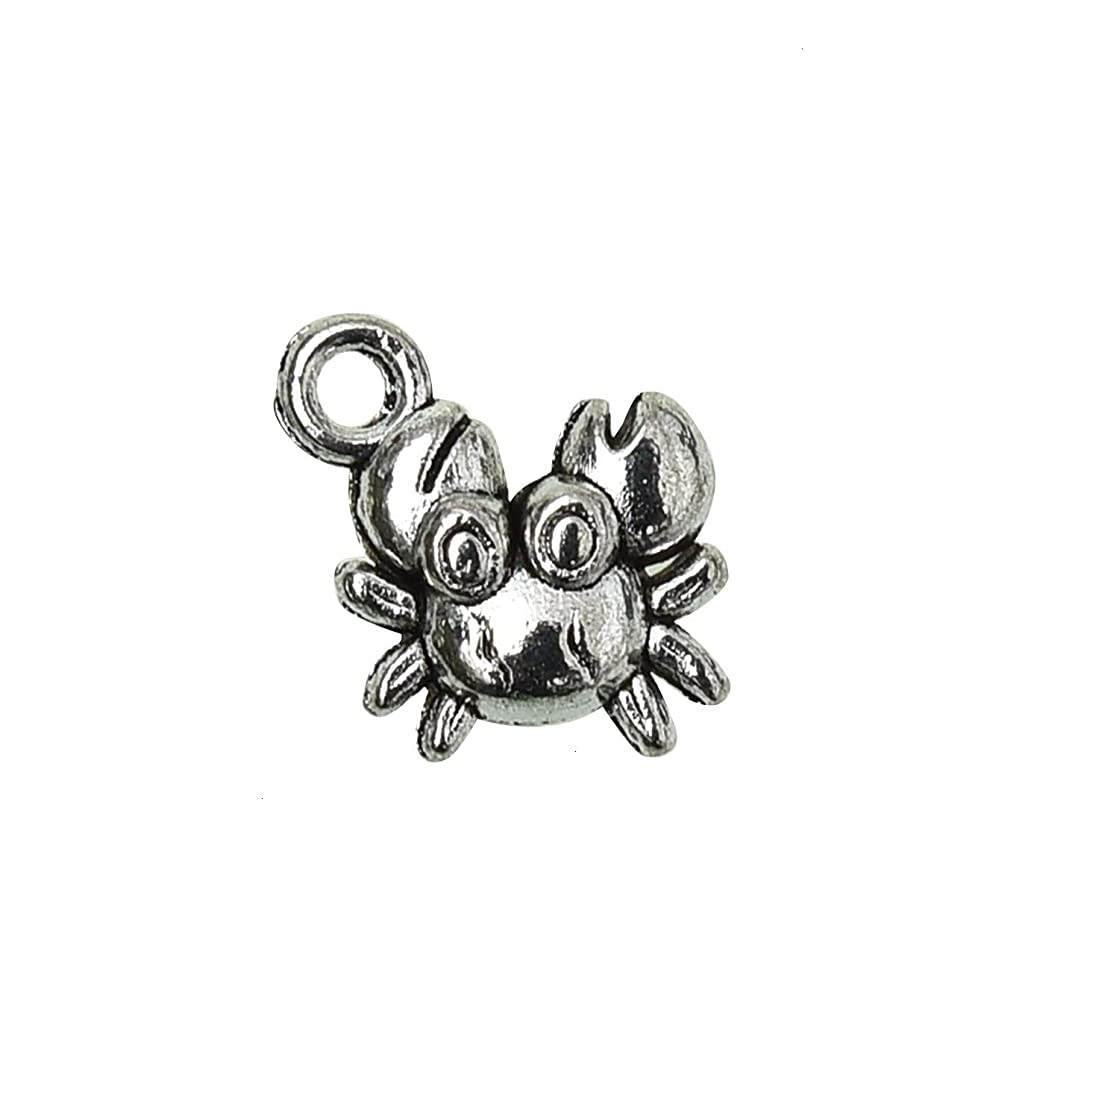 Monrocco 50PC Crab Charms Pendants Ocean Charms for DIY Jewelry Making Bracelets Crafting Necklace 12x12mm (Antiqued Silver)